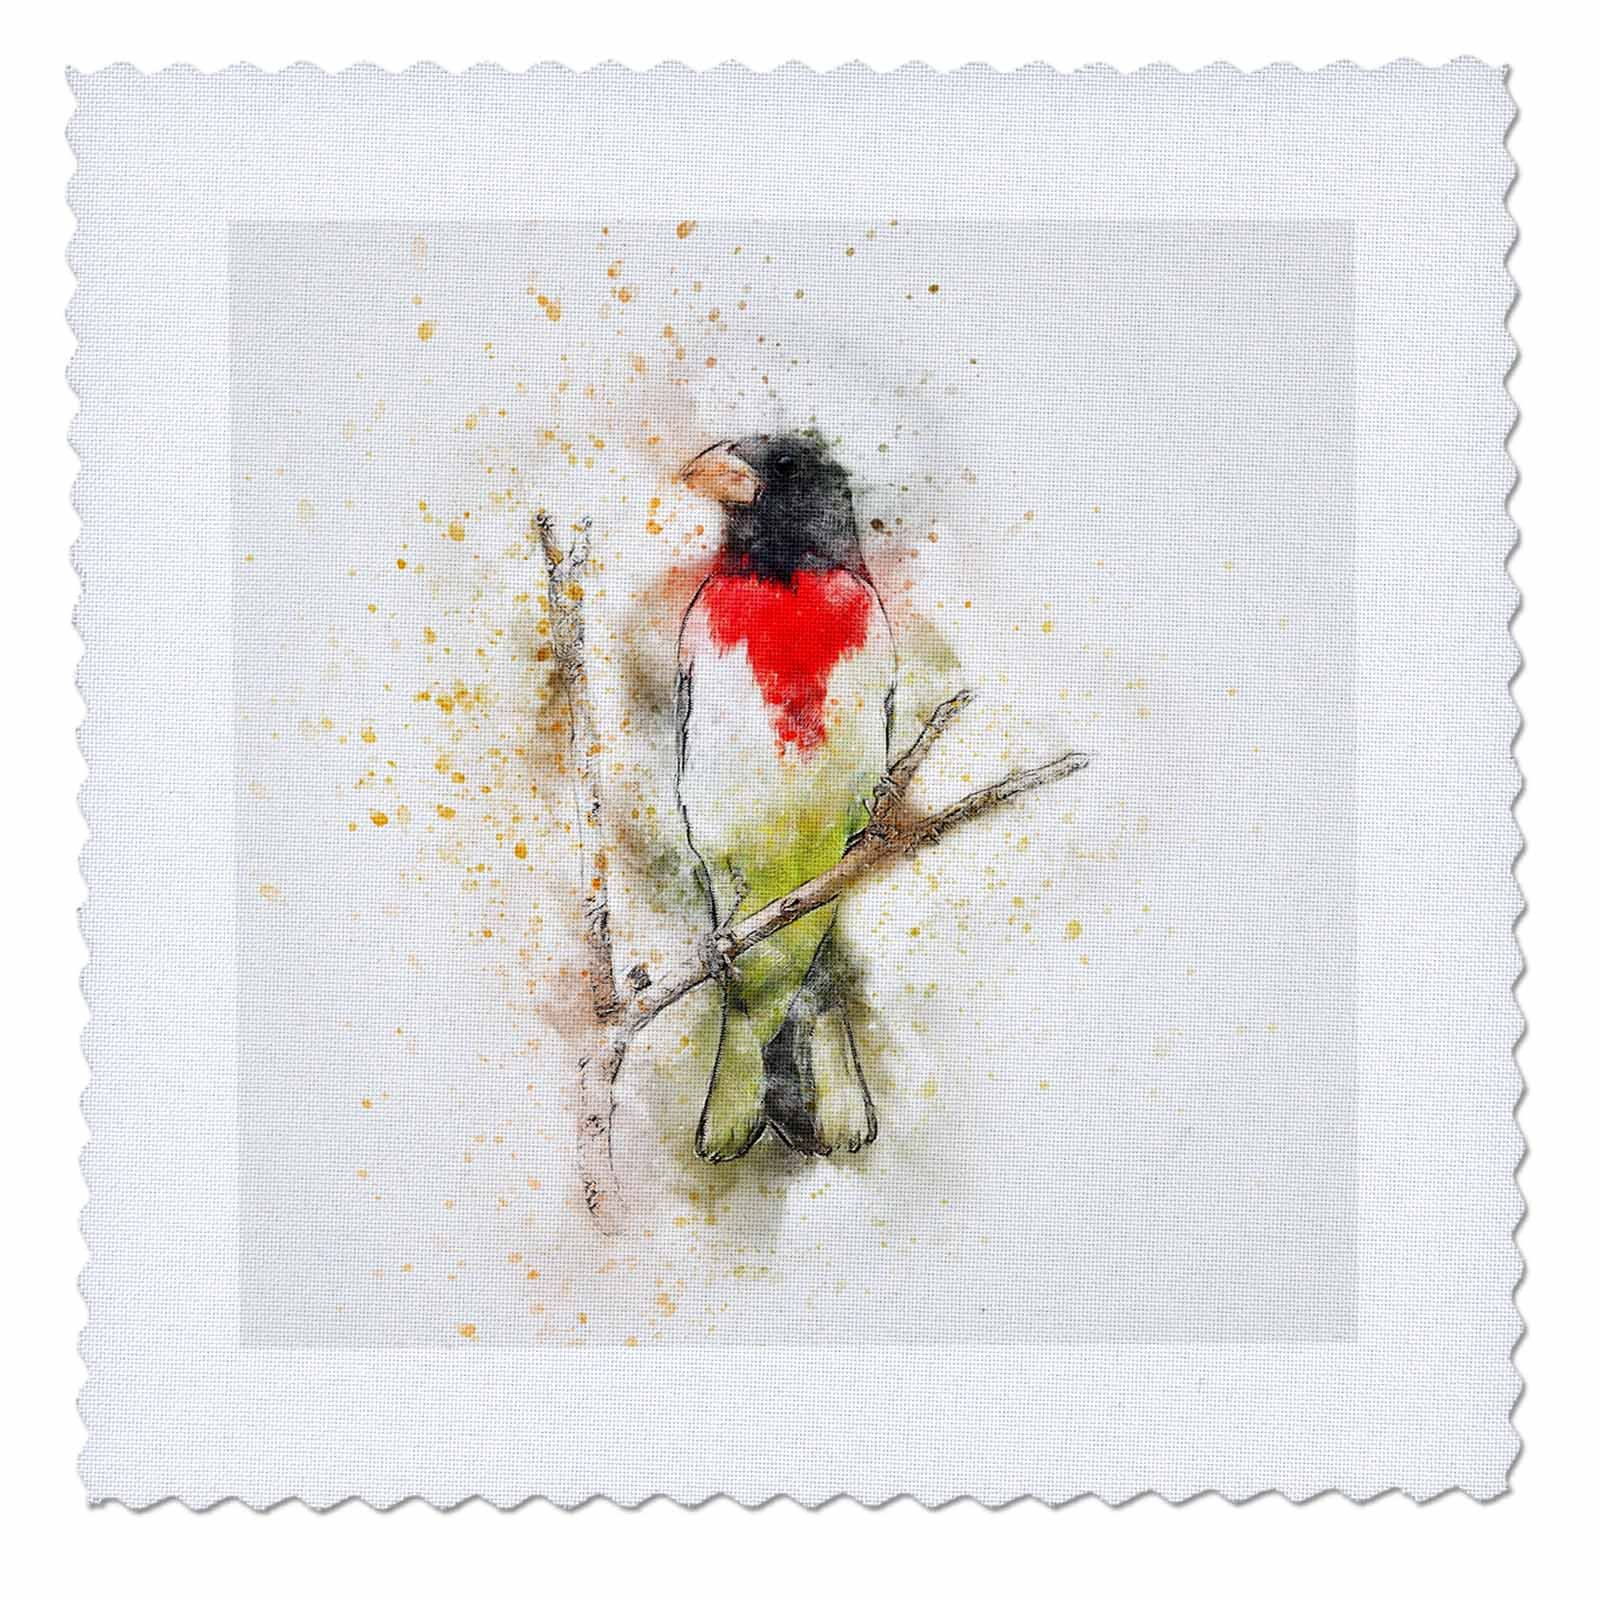 3dRose Sven Herkenrath Animal - Funny Watercolor Background with Bird Animal - 20x20 inch quilt square (qs_280250_8)